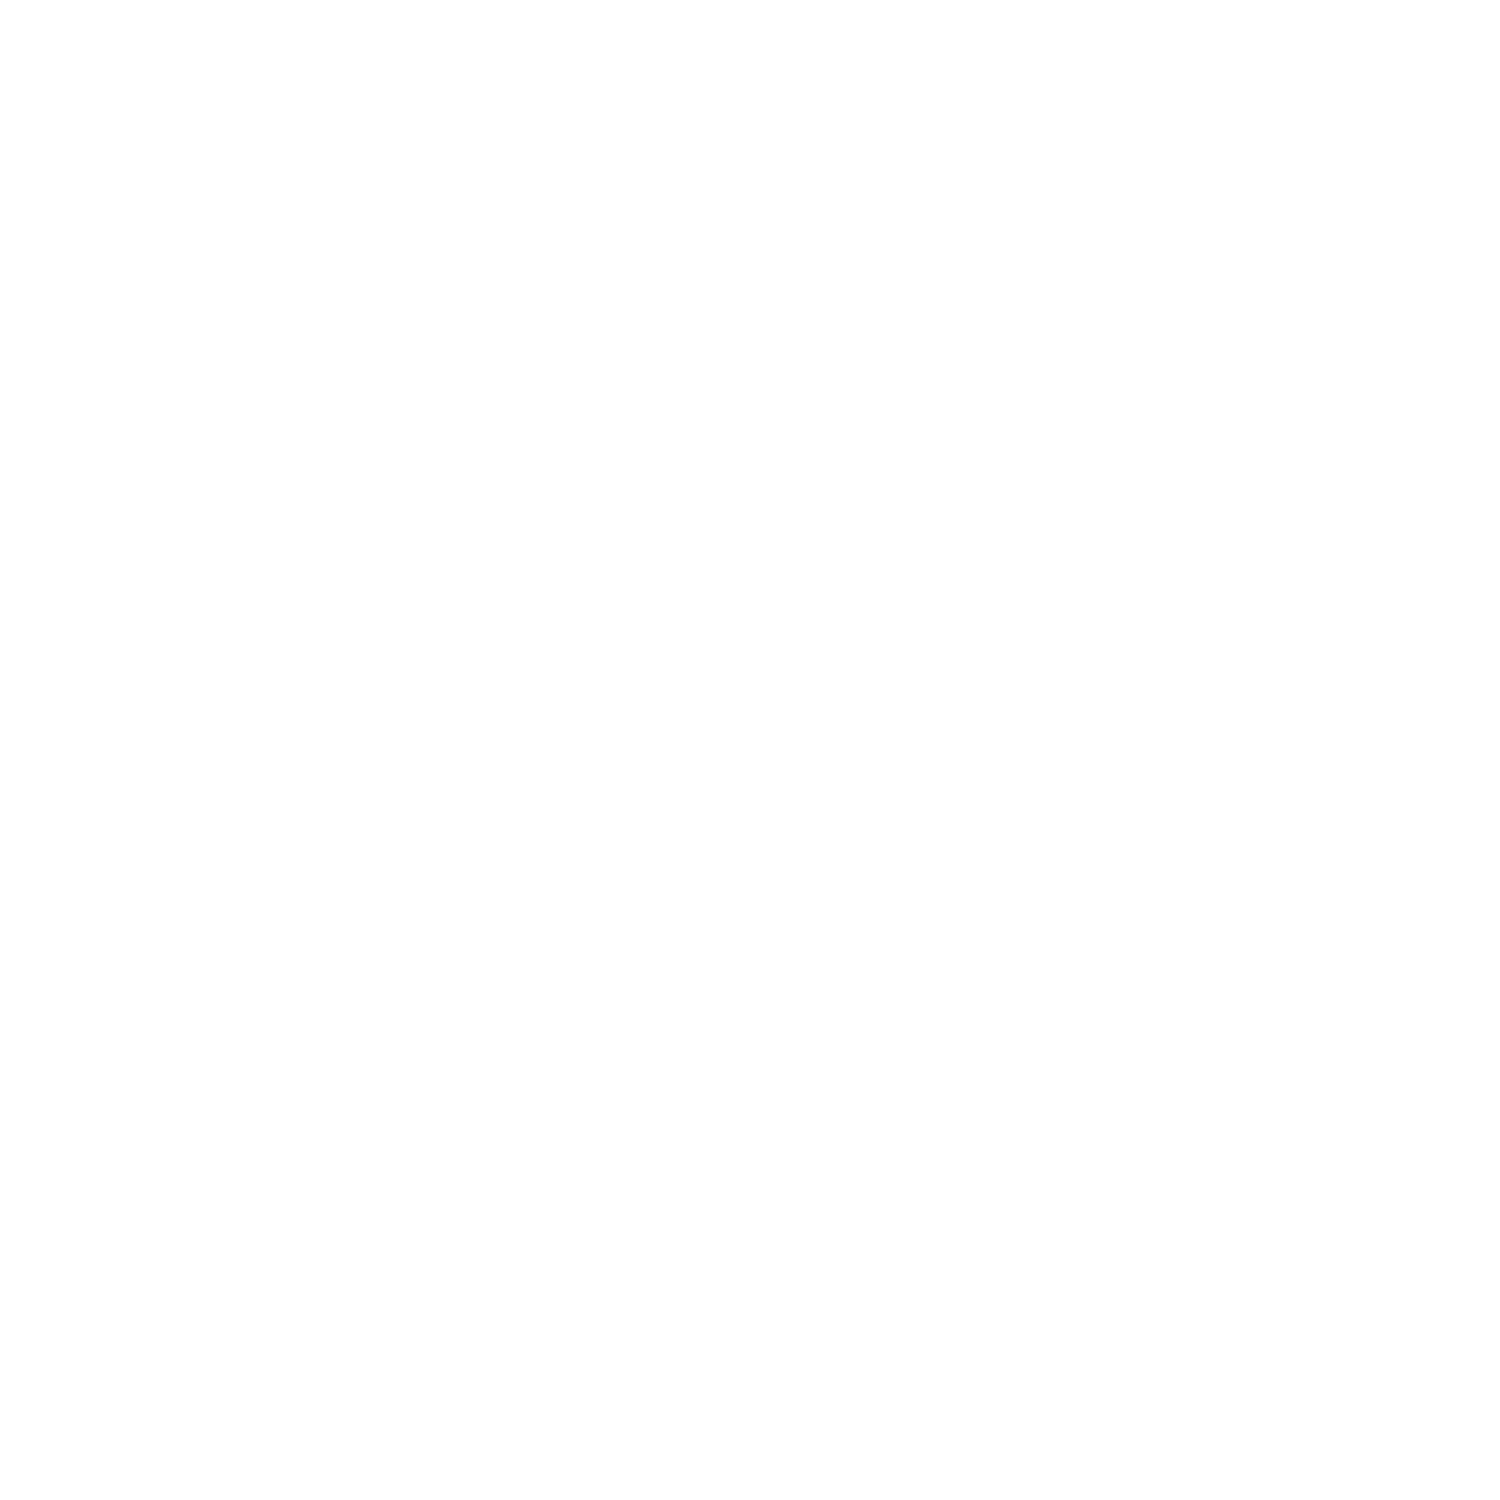 35th Parallel Productions